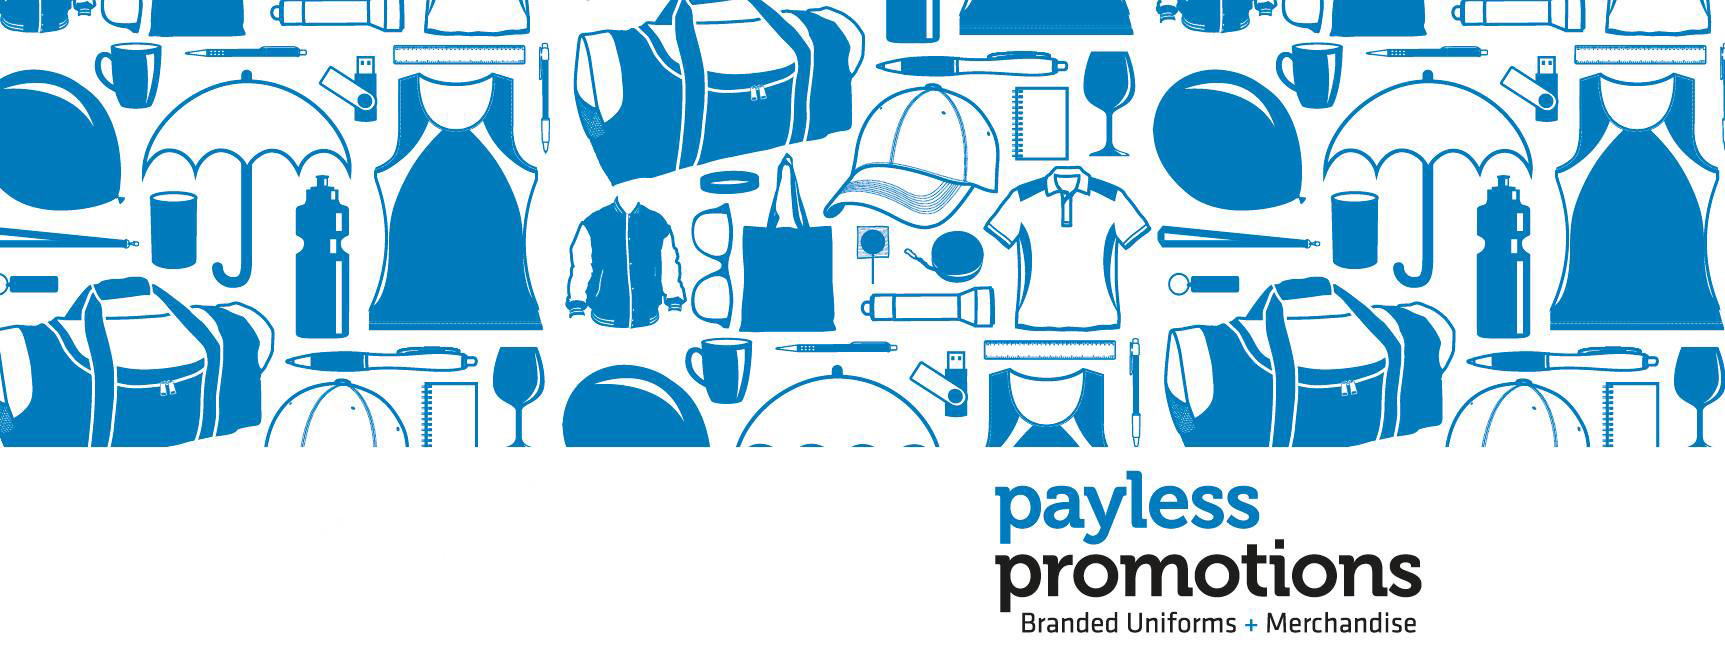 payless promotions